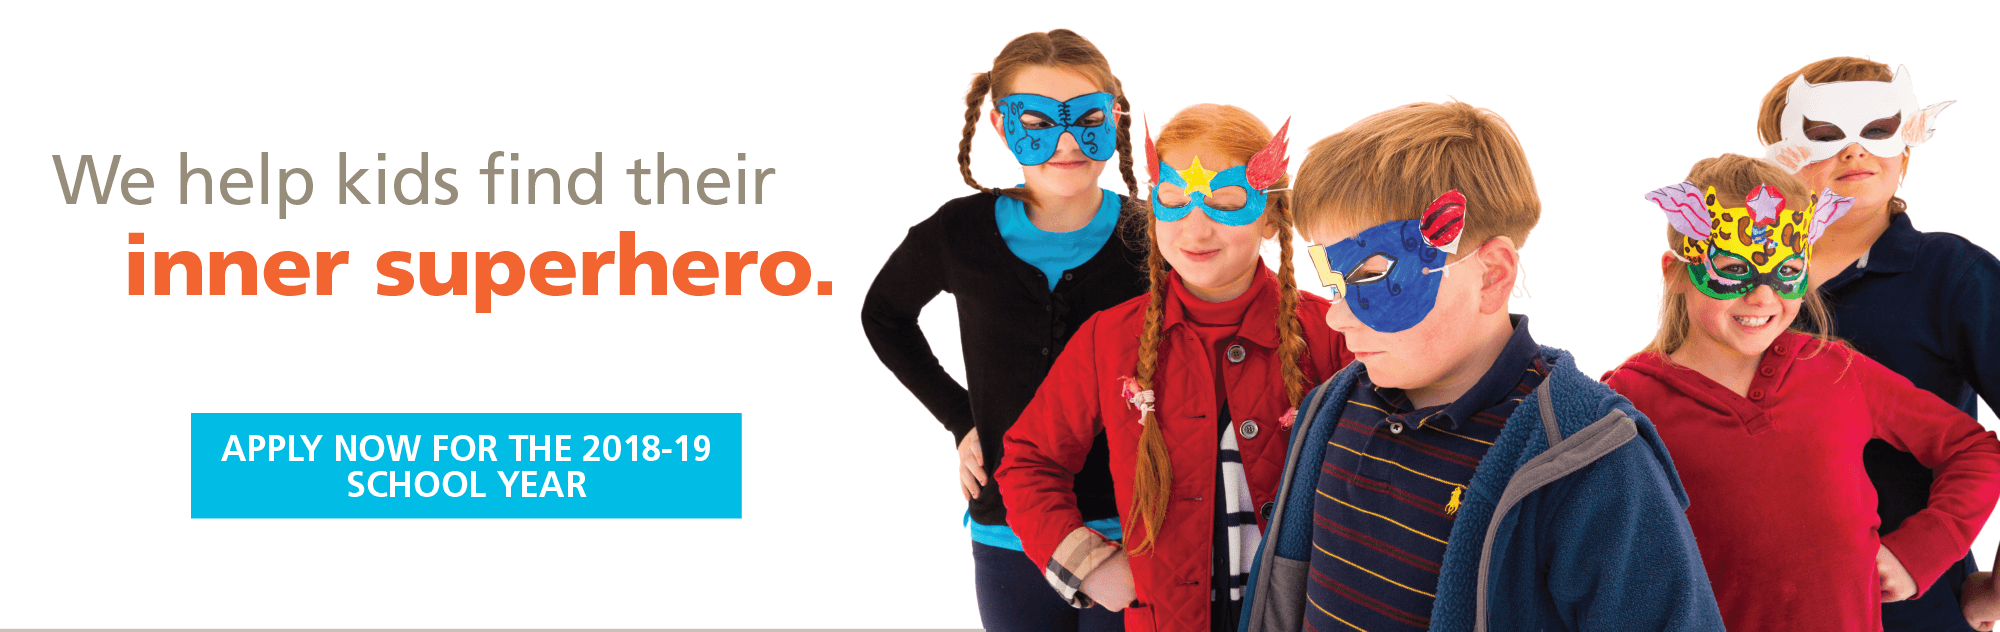 We help kids find their inner superhero. Apply now for the 2018-19 school year at Sand Hill School.